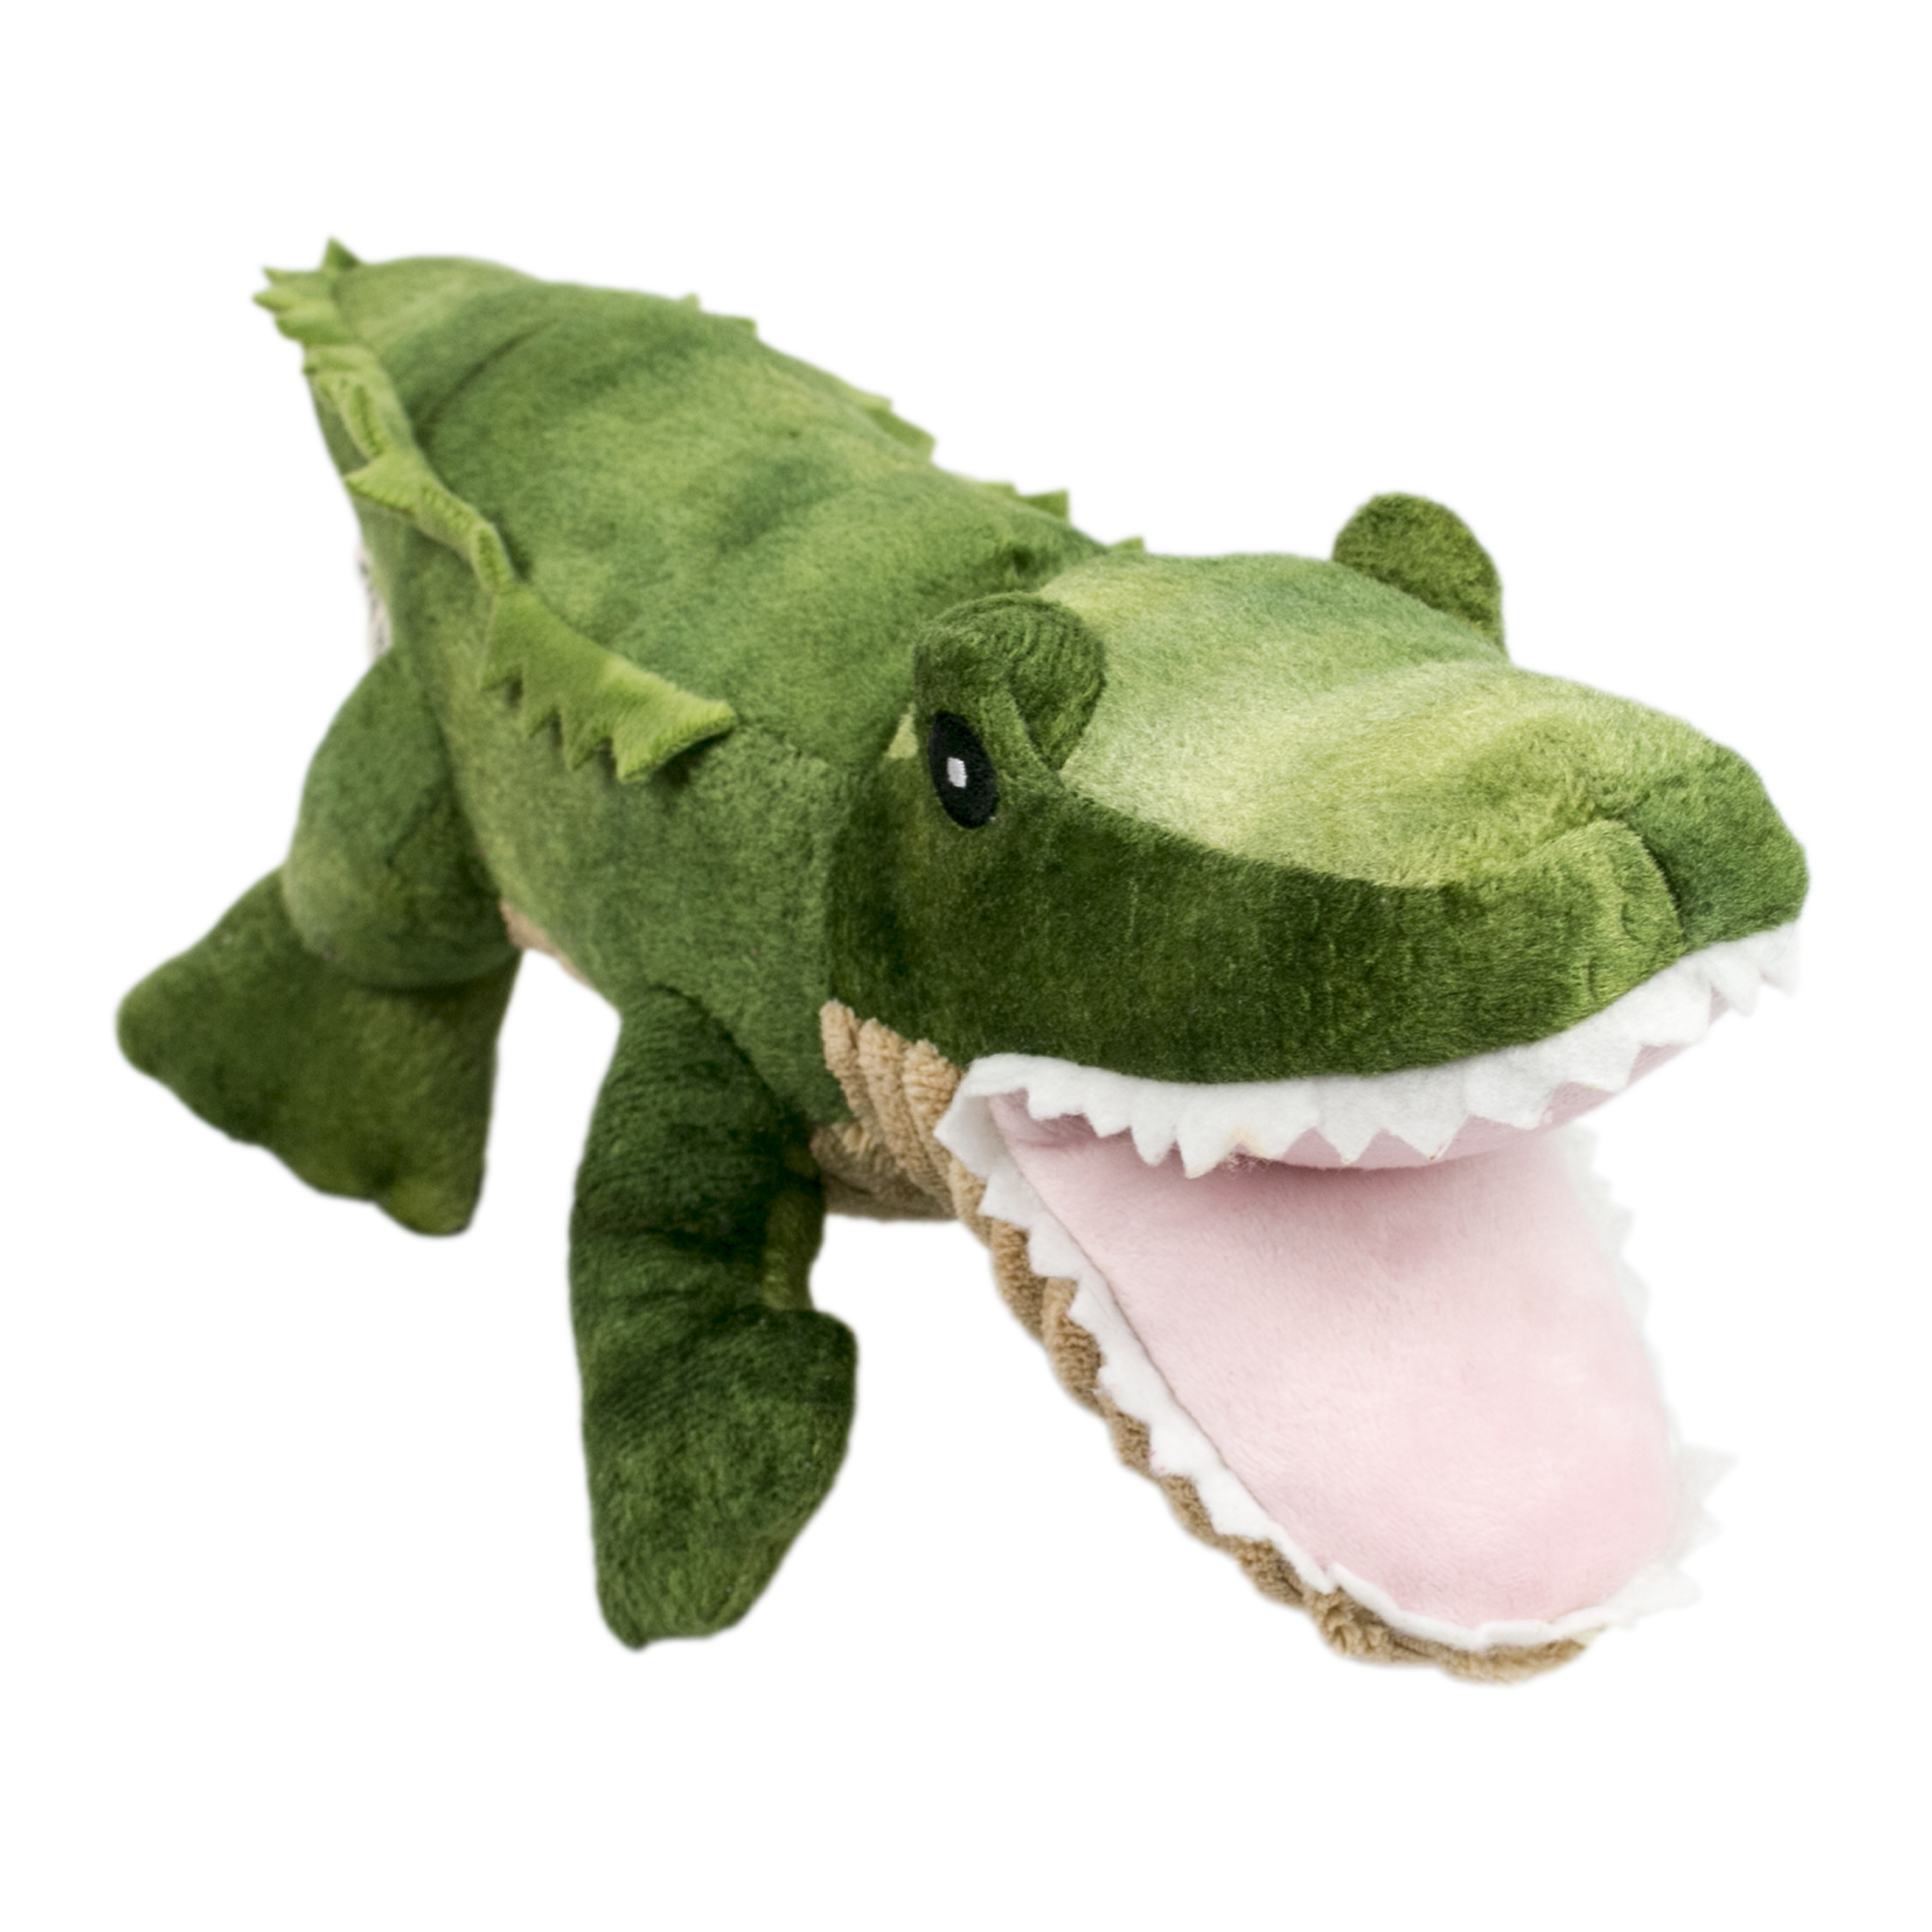 Tall Tails Crunch Gator Dog Toy, 15-in